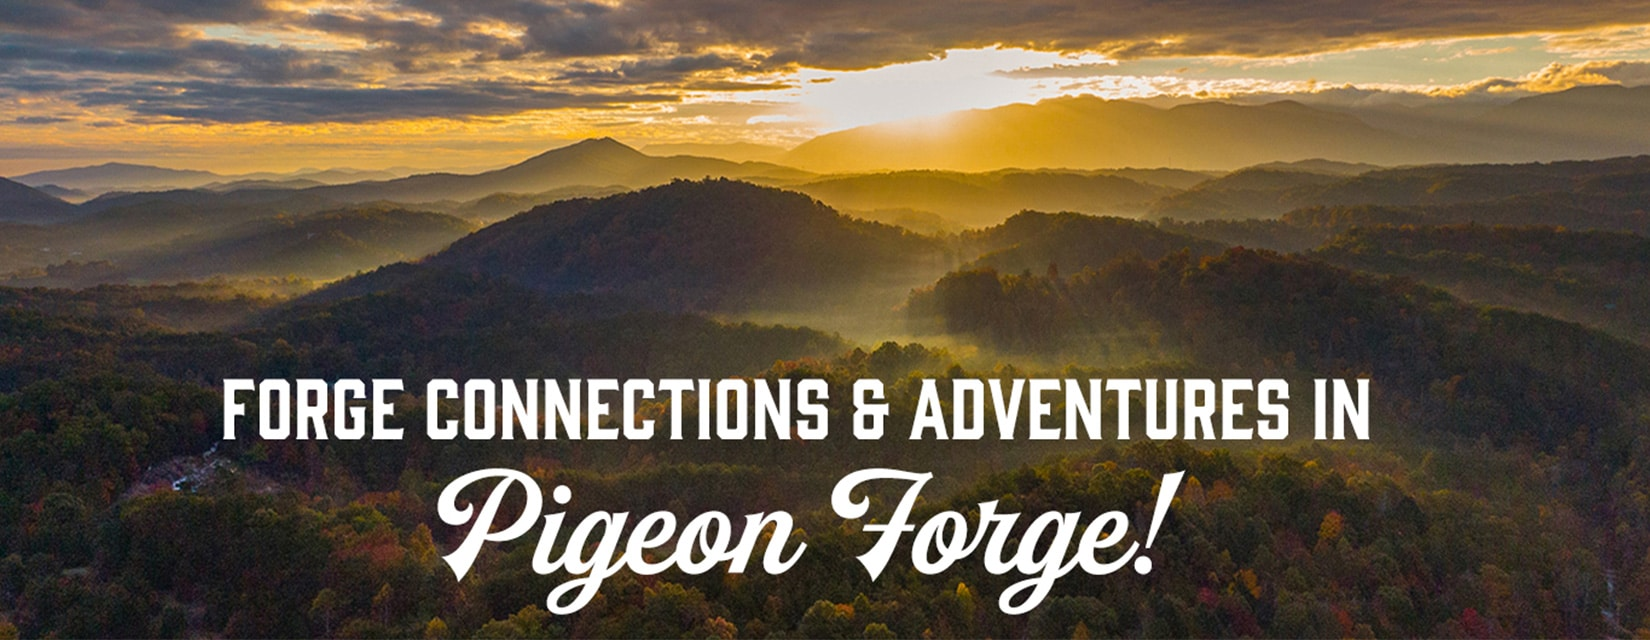 Forge Connections & Adventures in Pigeon Forge